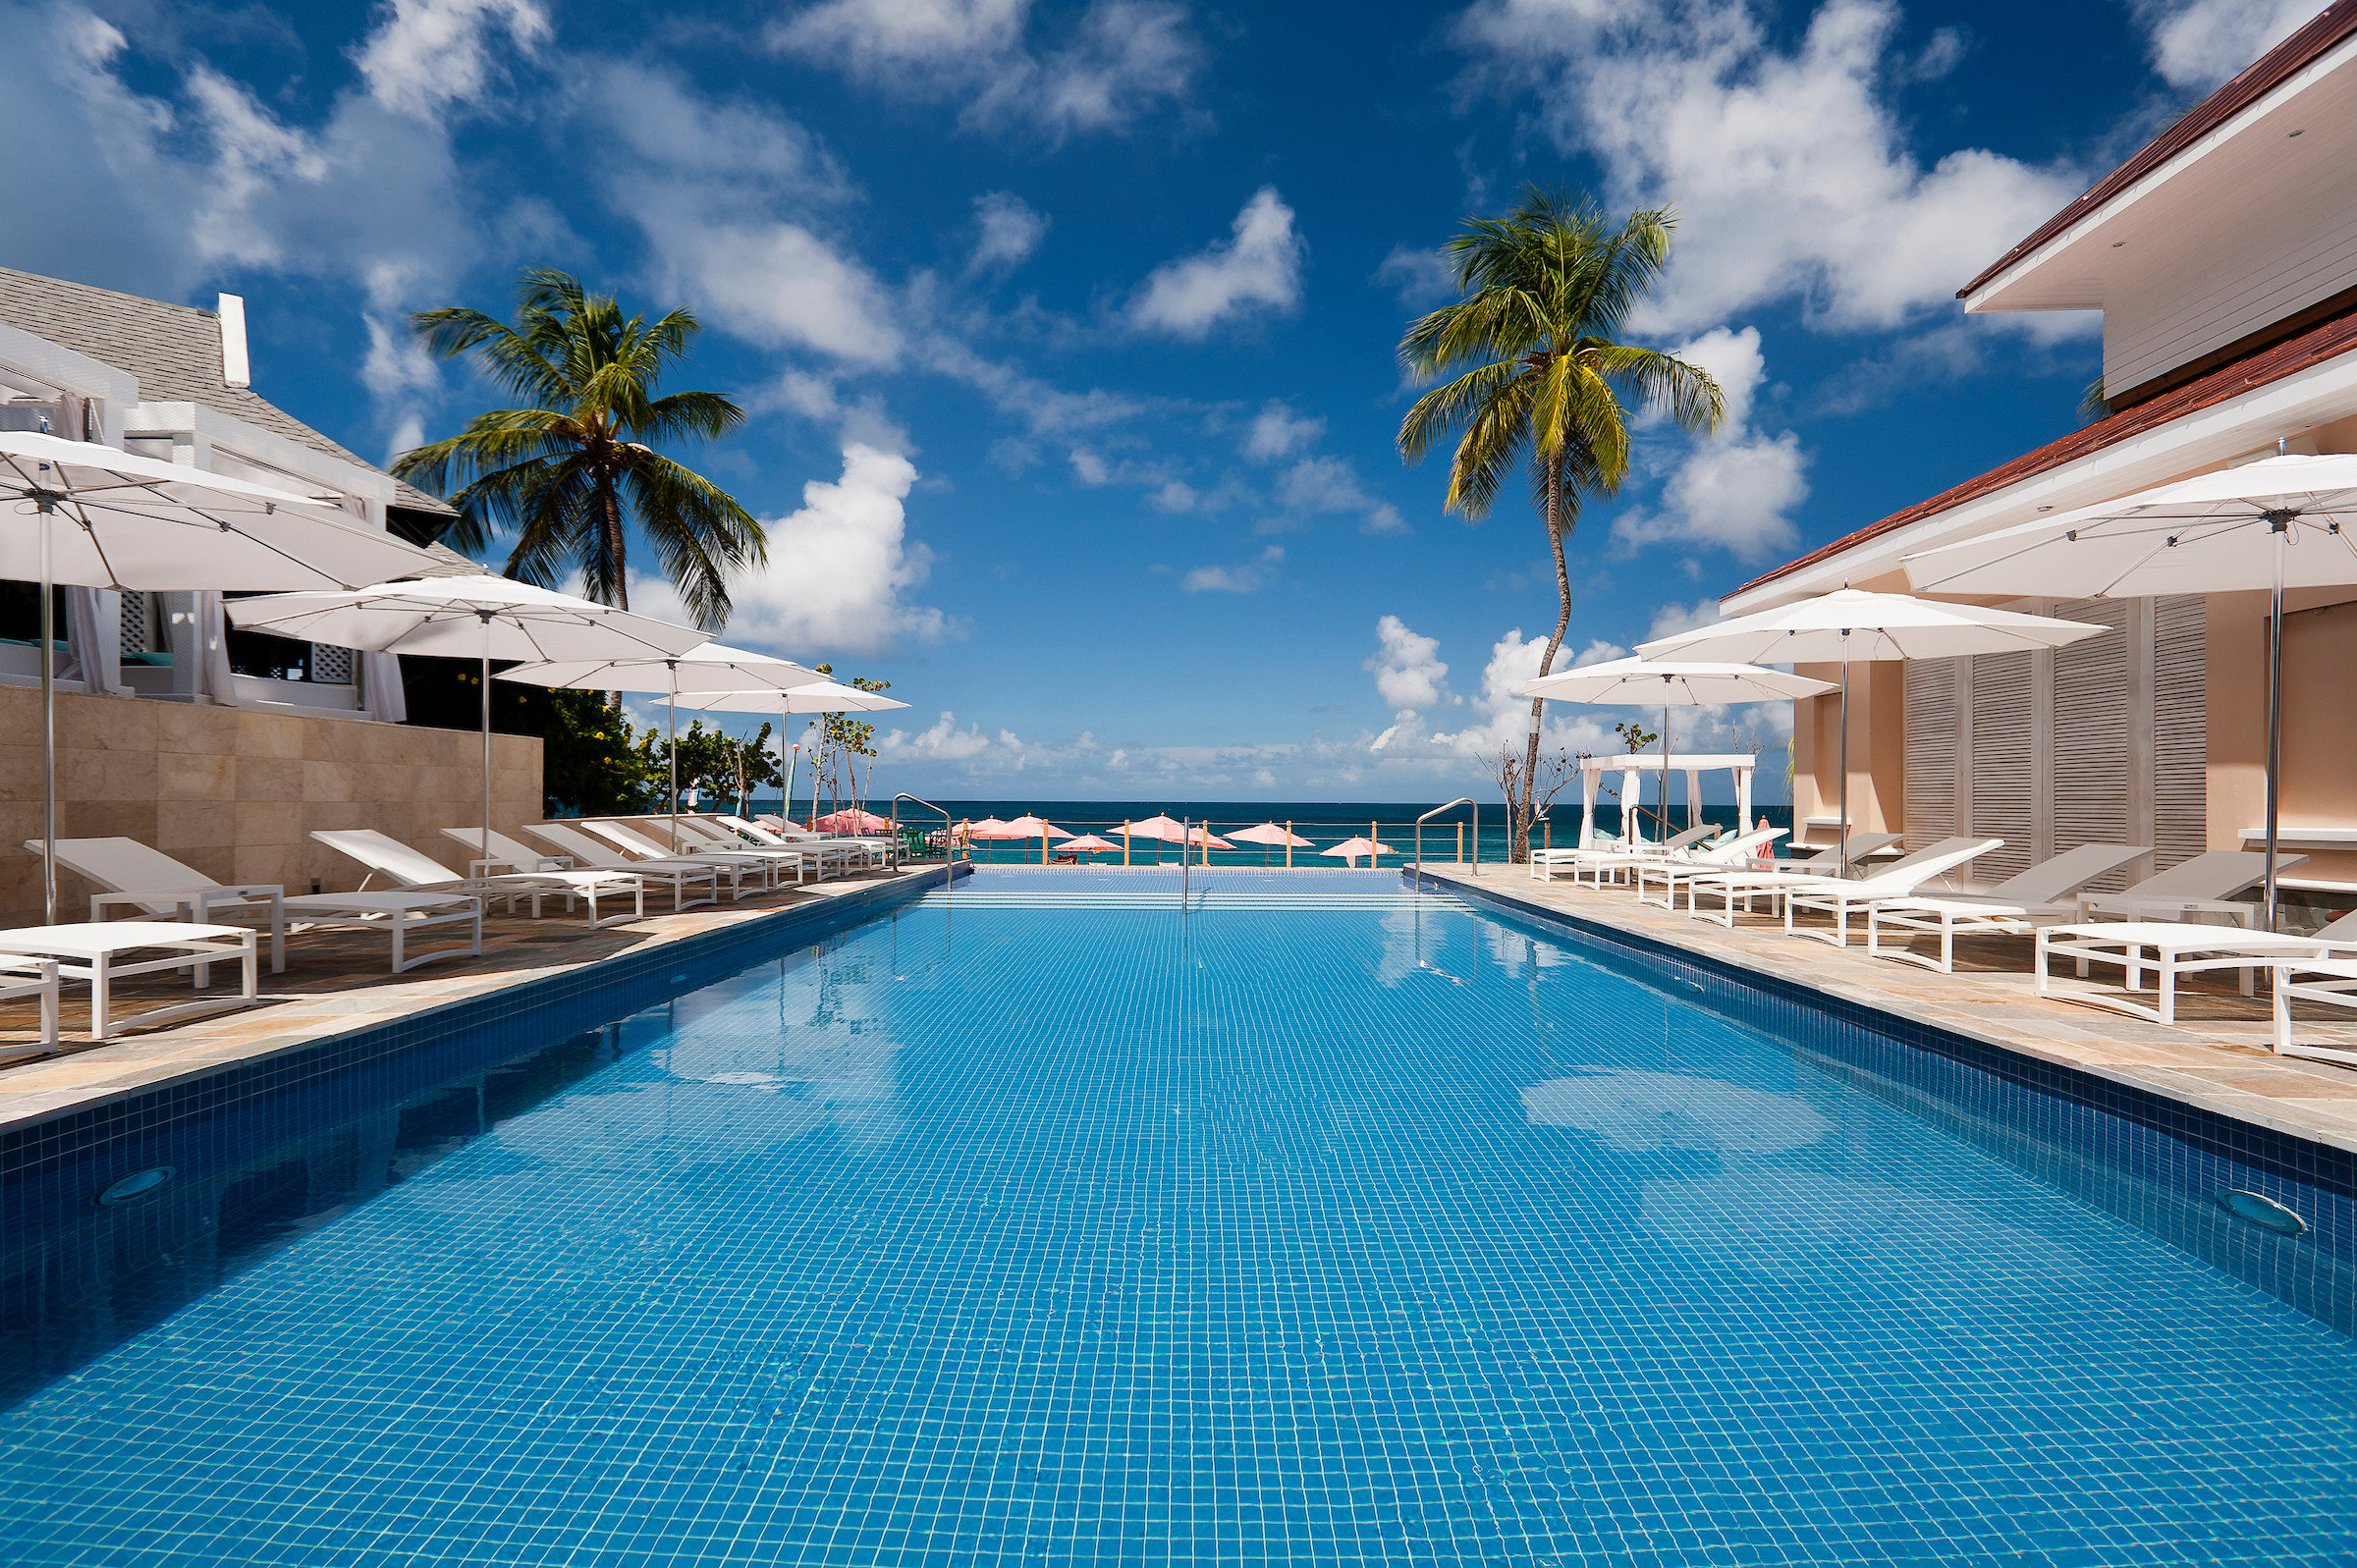 The Best AdultsOnly AllInclusive Resorts in the Caribbean